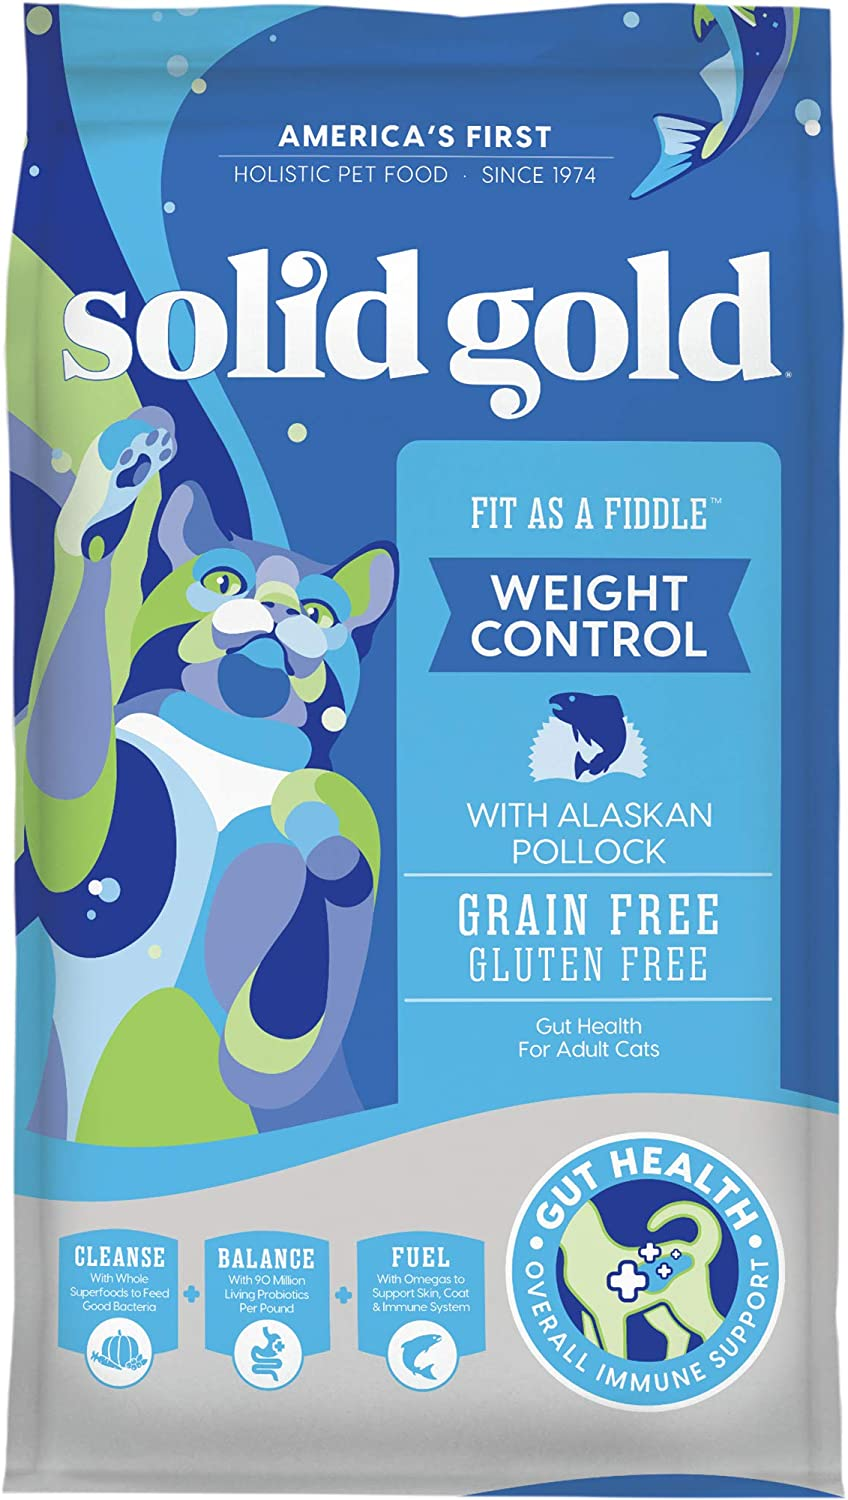 2. Solid Gold Fit as a Fiddle Dry Cat Food for Weight Control